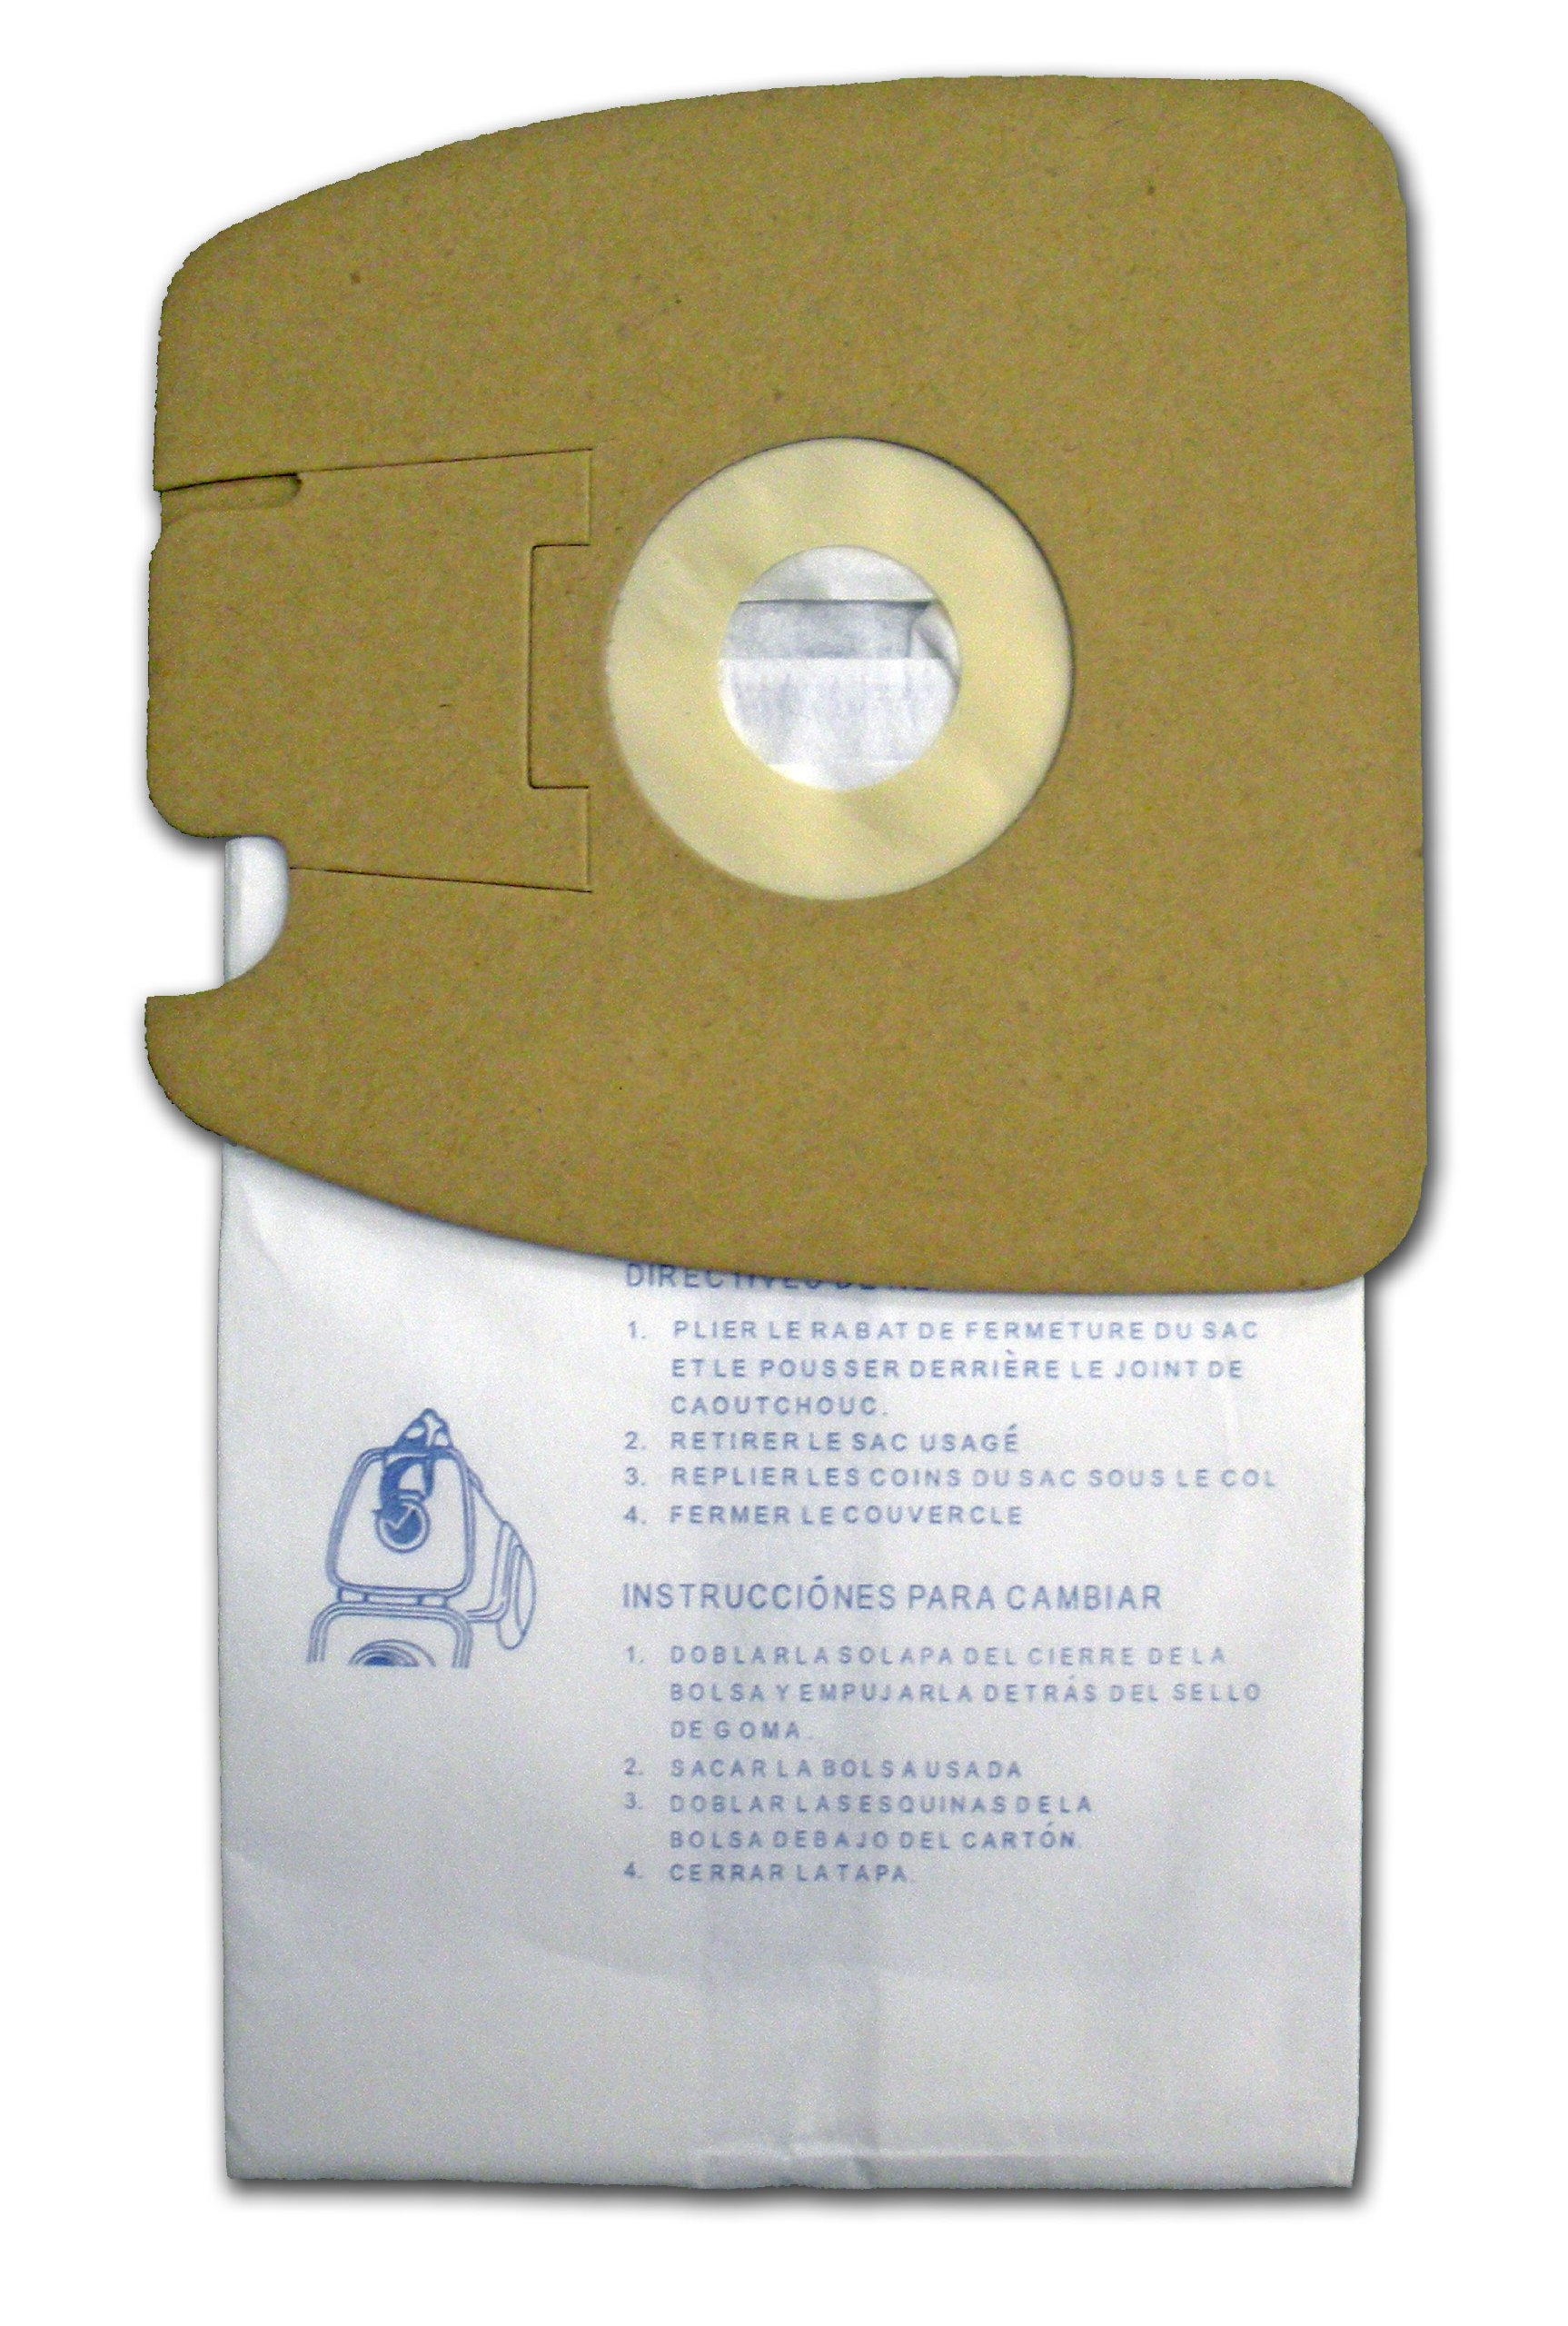 EnviroCare Replacement Vacuum Bags for Eureka Style MM Eureka Mighty Mite 3670 and 3680 Series Canisters 27 Bags by EnviroCare